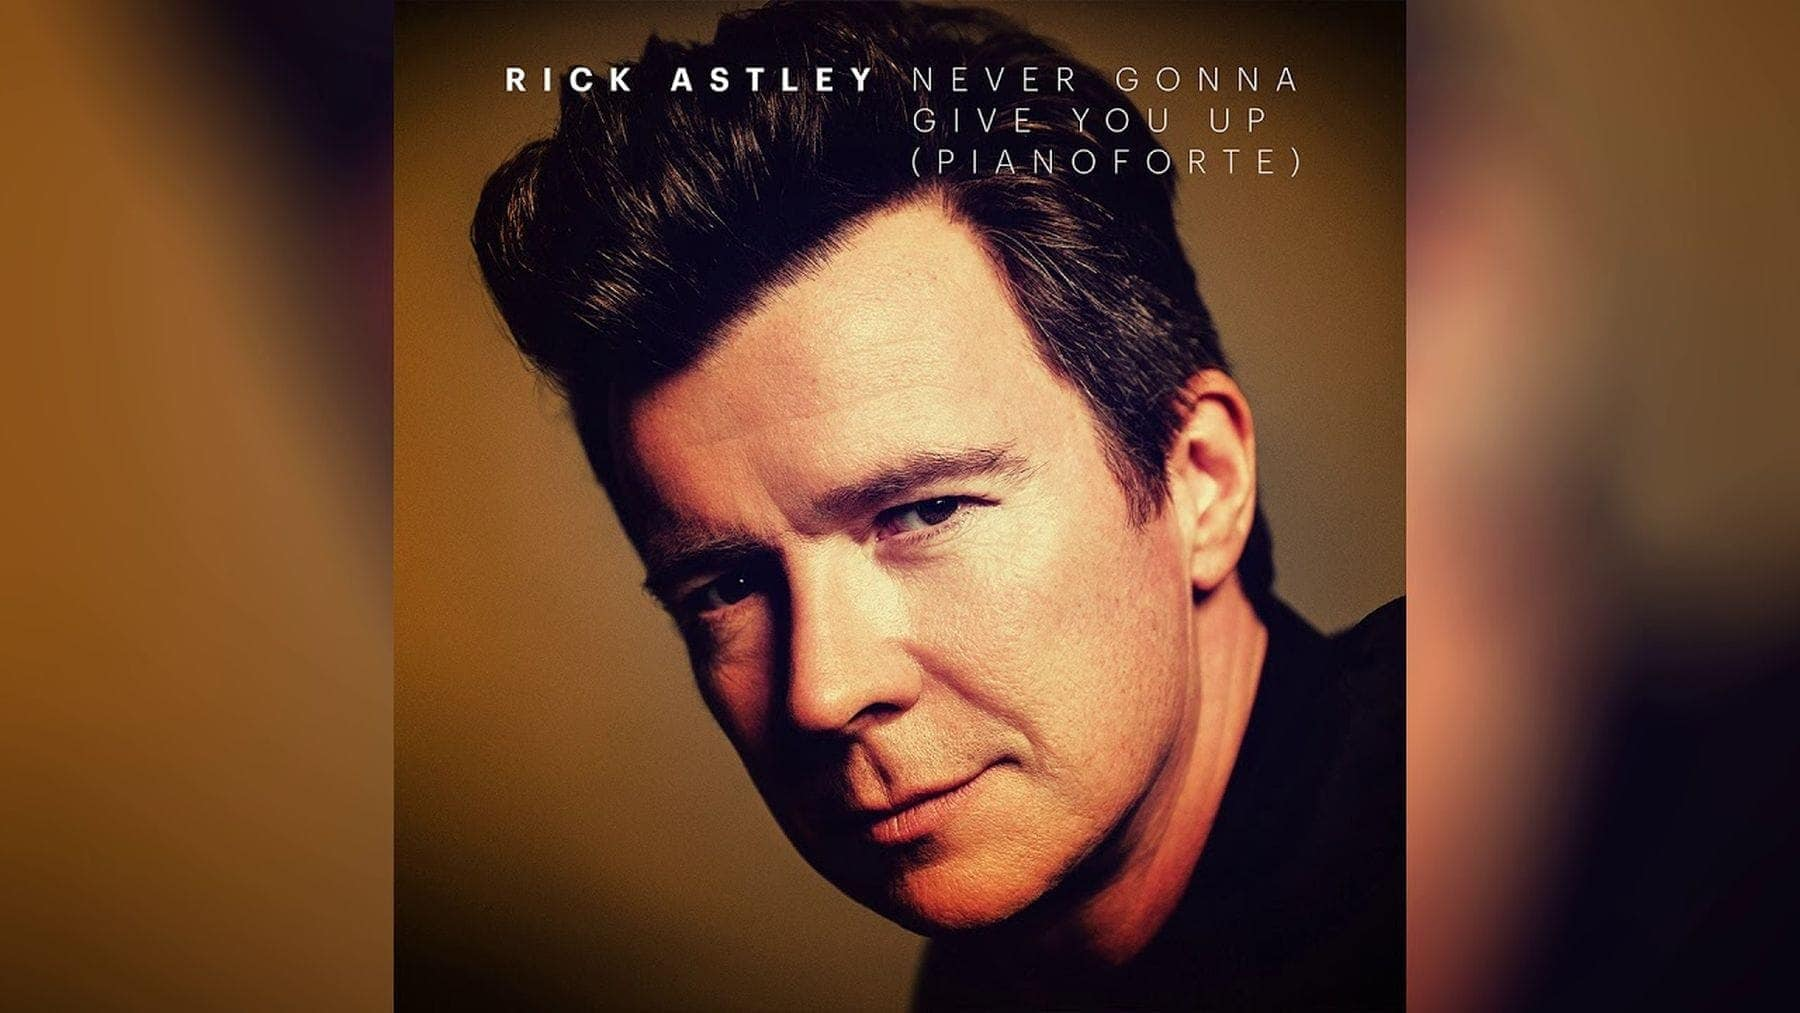 Rick Astley – Never Gonna Give You Up (in traurig) | Musik | Was is hier eigentlich los?